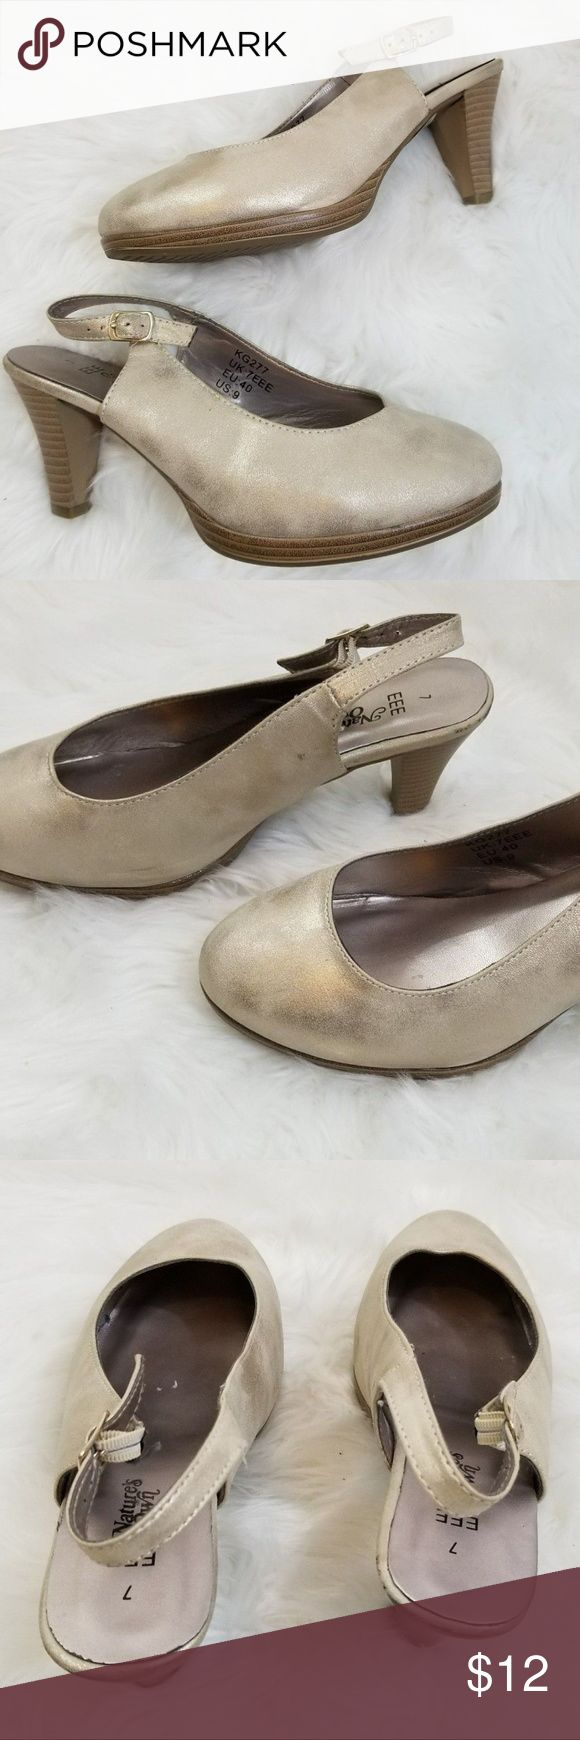 Best 25 shoe size conversion ideas on pinterest shoe chart natures own slingback court shoe extra wide nvjuhfo Image collections